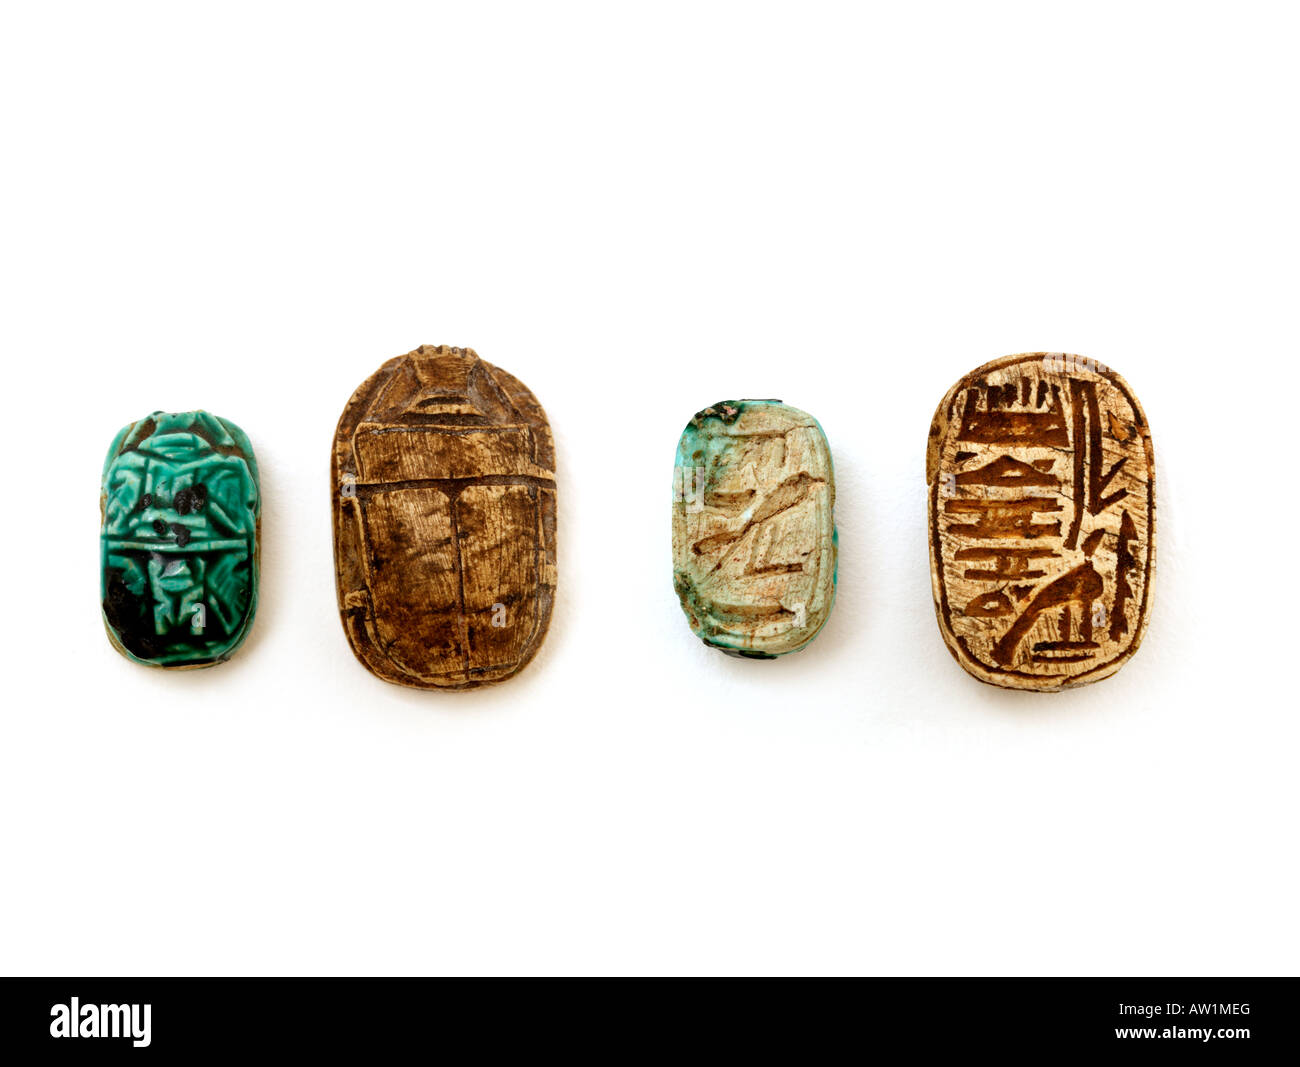 Egyptian Scarab from Sudan Amulet worn by Ancient Egyptian to represent God Khepri - Stock Image